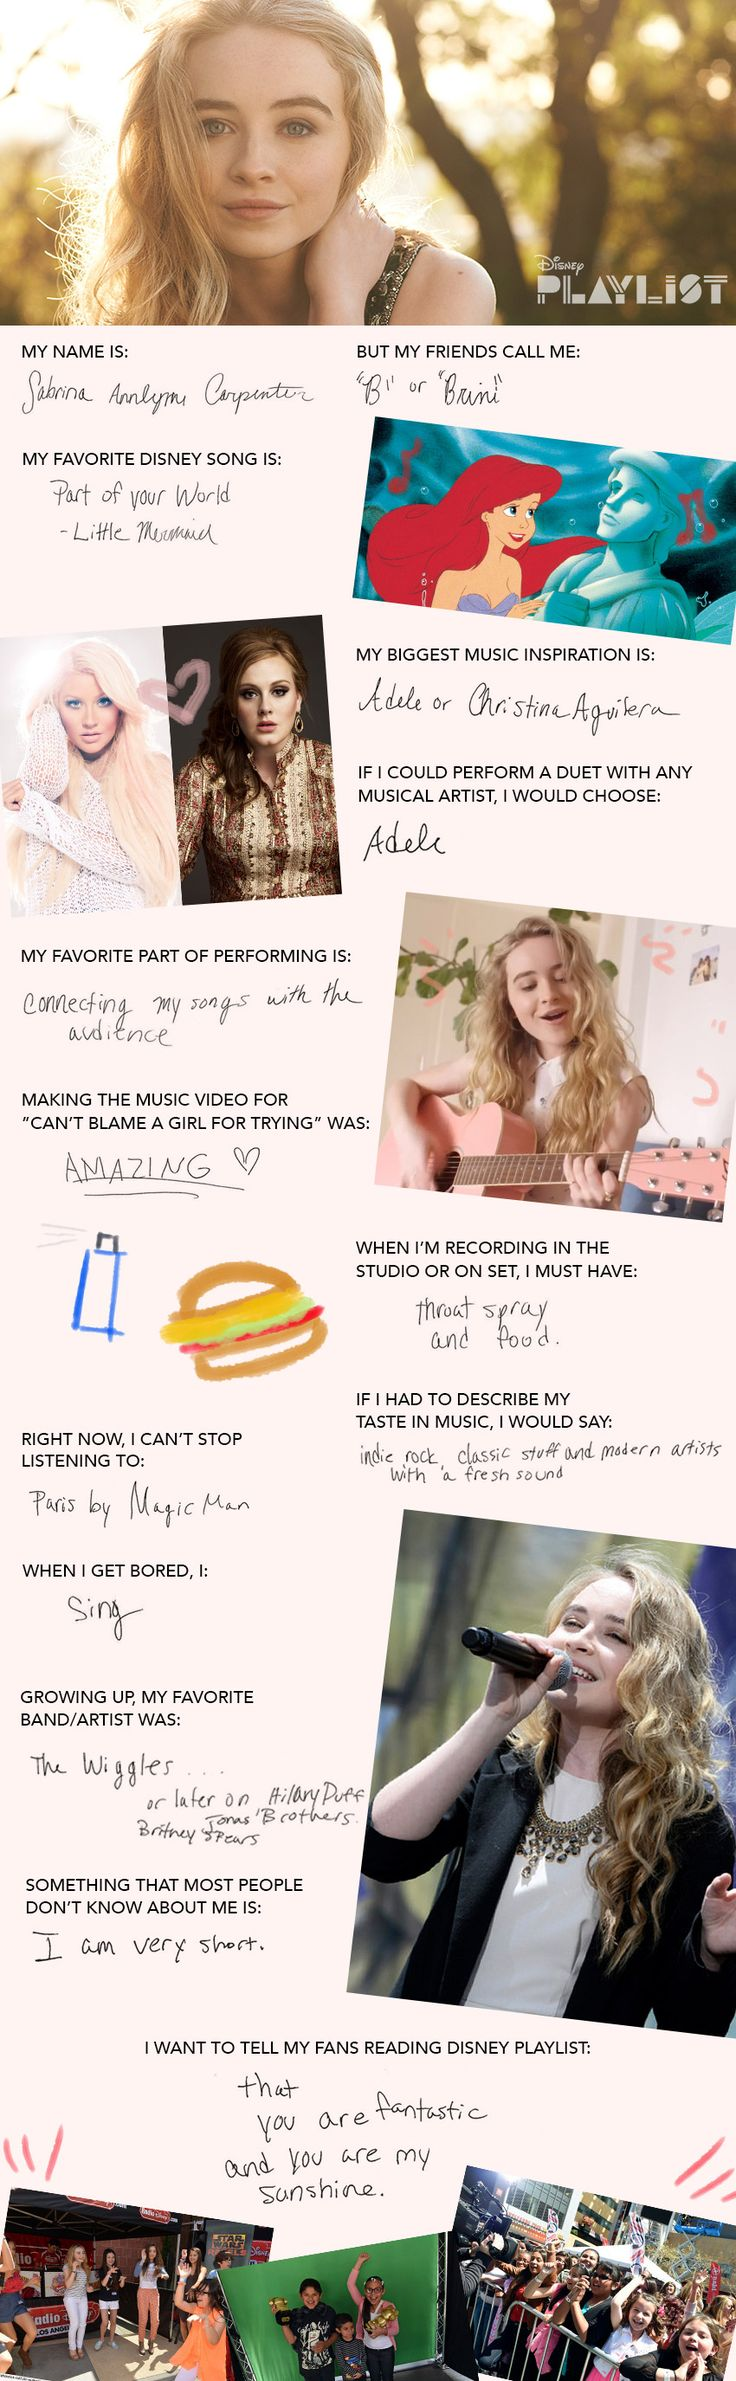 Sabrina Carpenter Takes the Playlist Pop Quiz